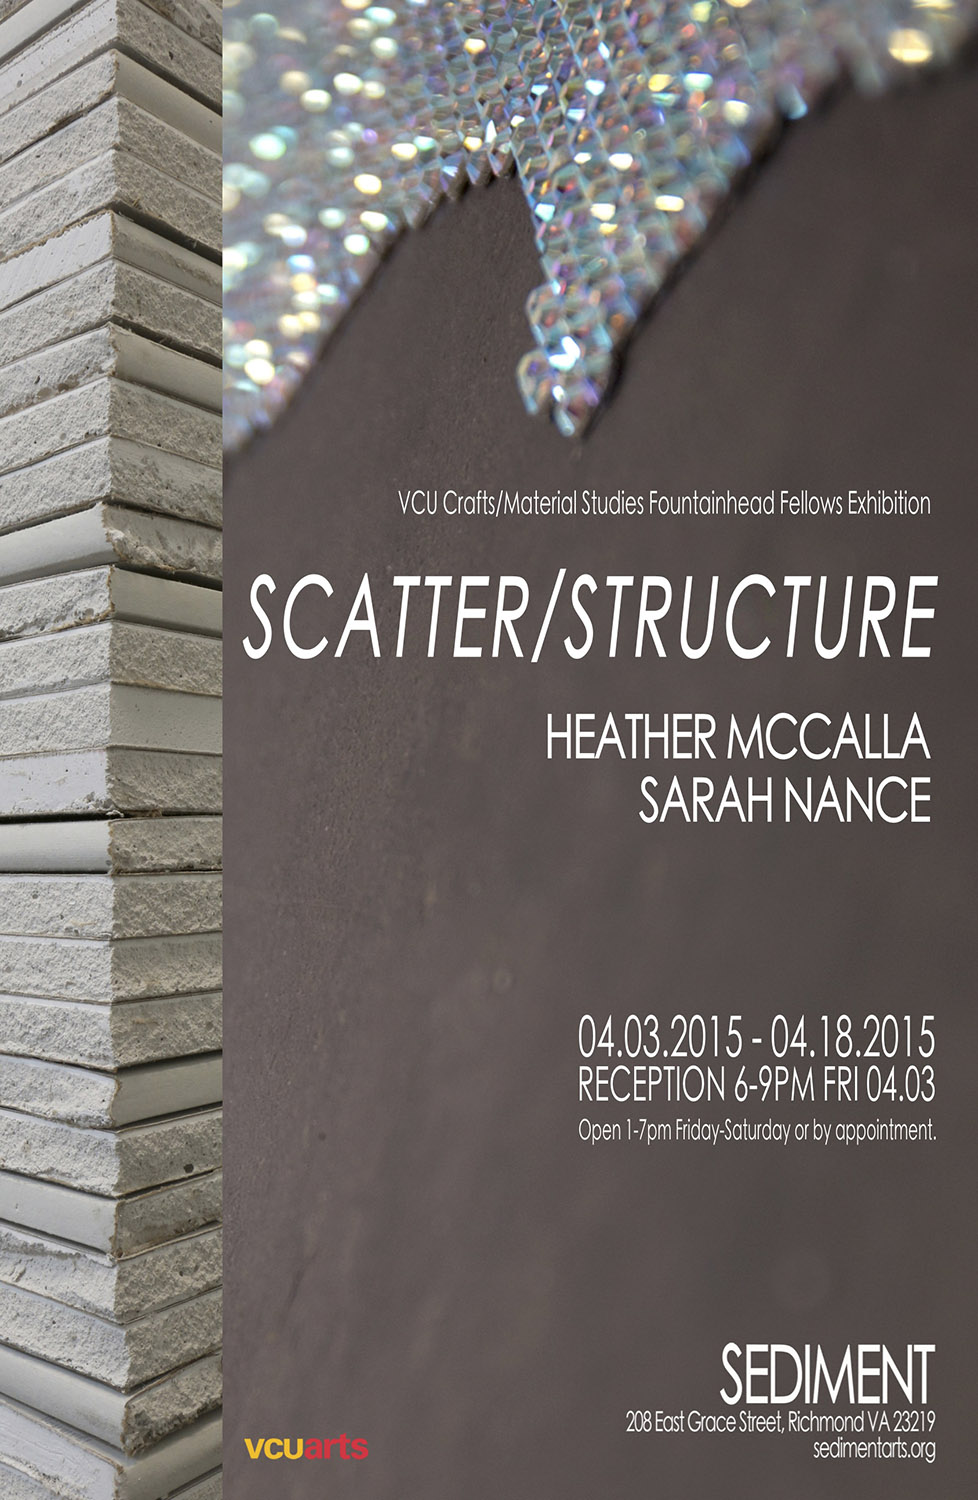 w_E12-ScatterStructure.jpg